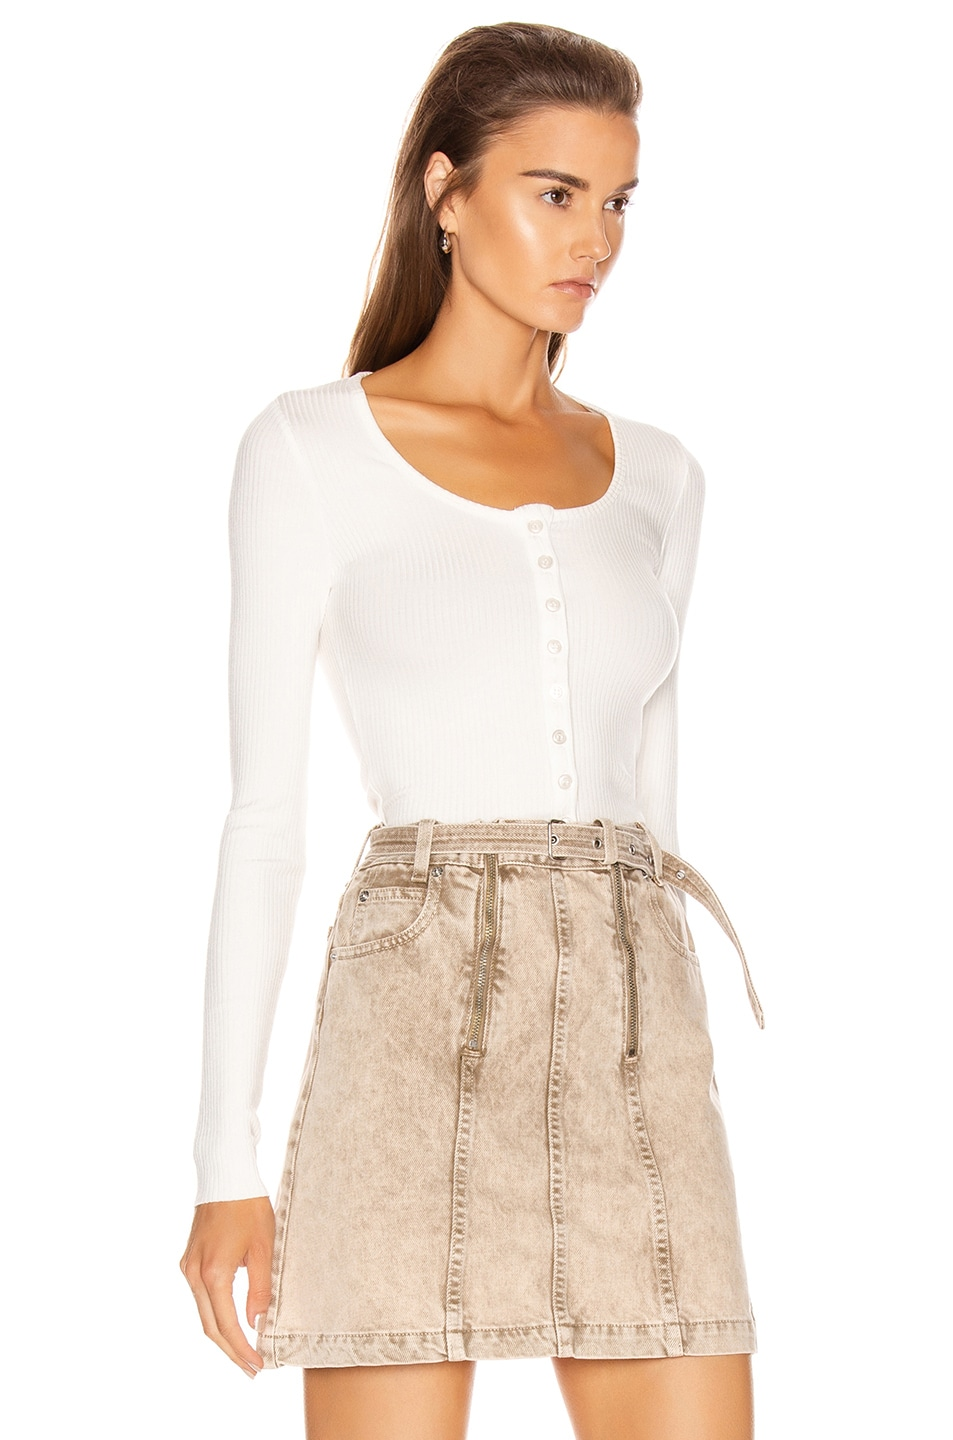 Image 2 of The Range Alloy Rib Cropped Button Down Top in White